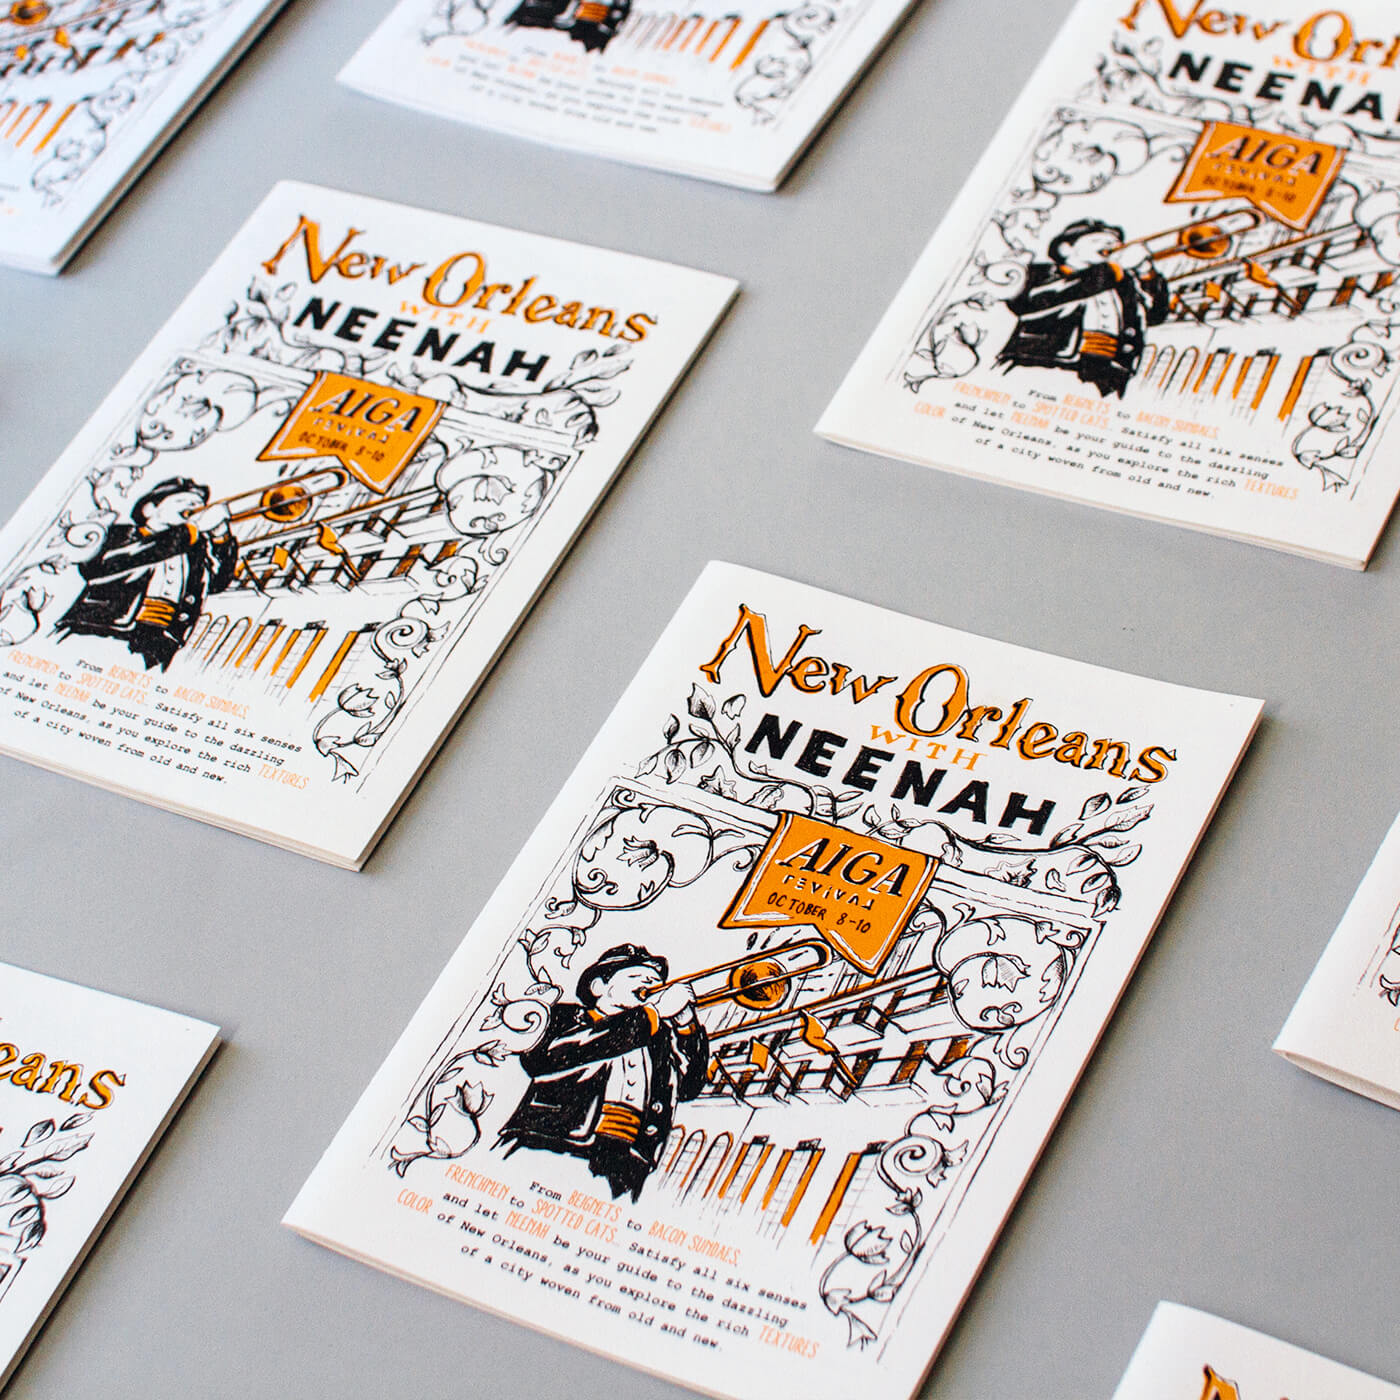 New Orleans with Neenah - An illustrated neighborhood guide of the Big Easy, with neighborhood maps to introduce you to destinations, restaurants, music and more from the French Quarter to Frenchmen Street and beyond.IllustrationView Project →